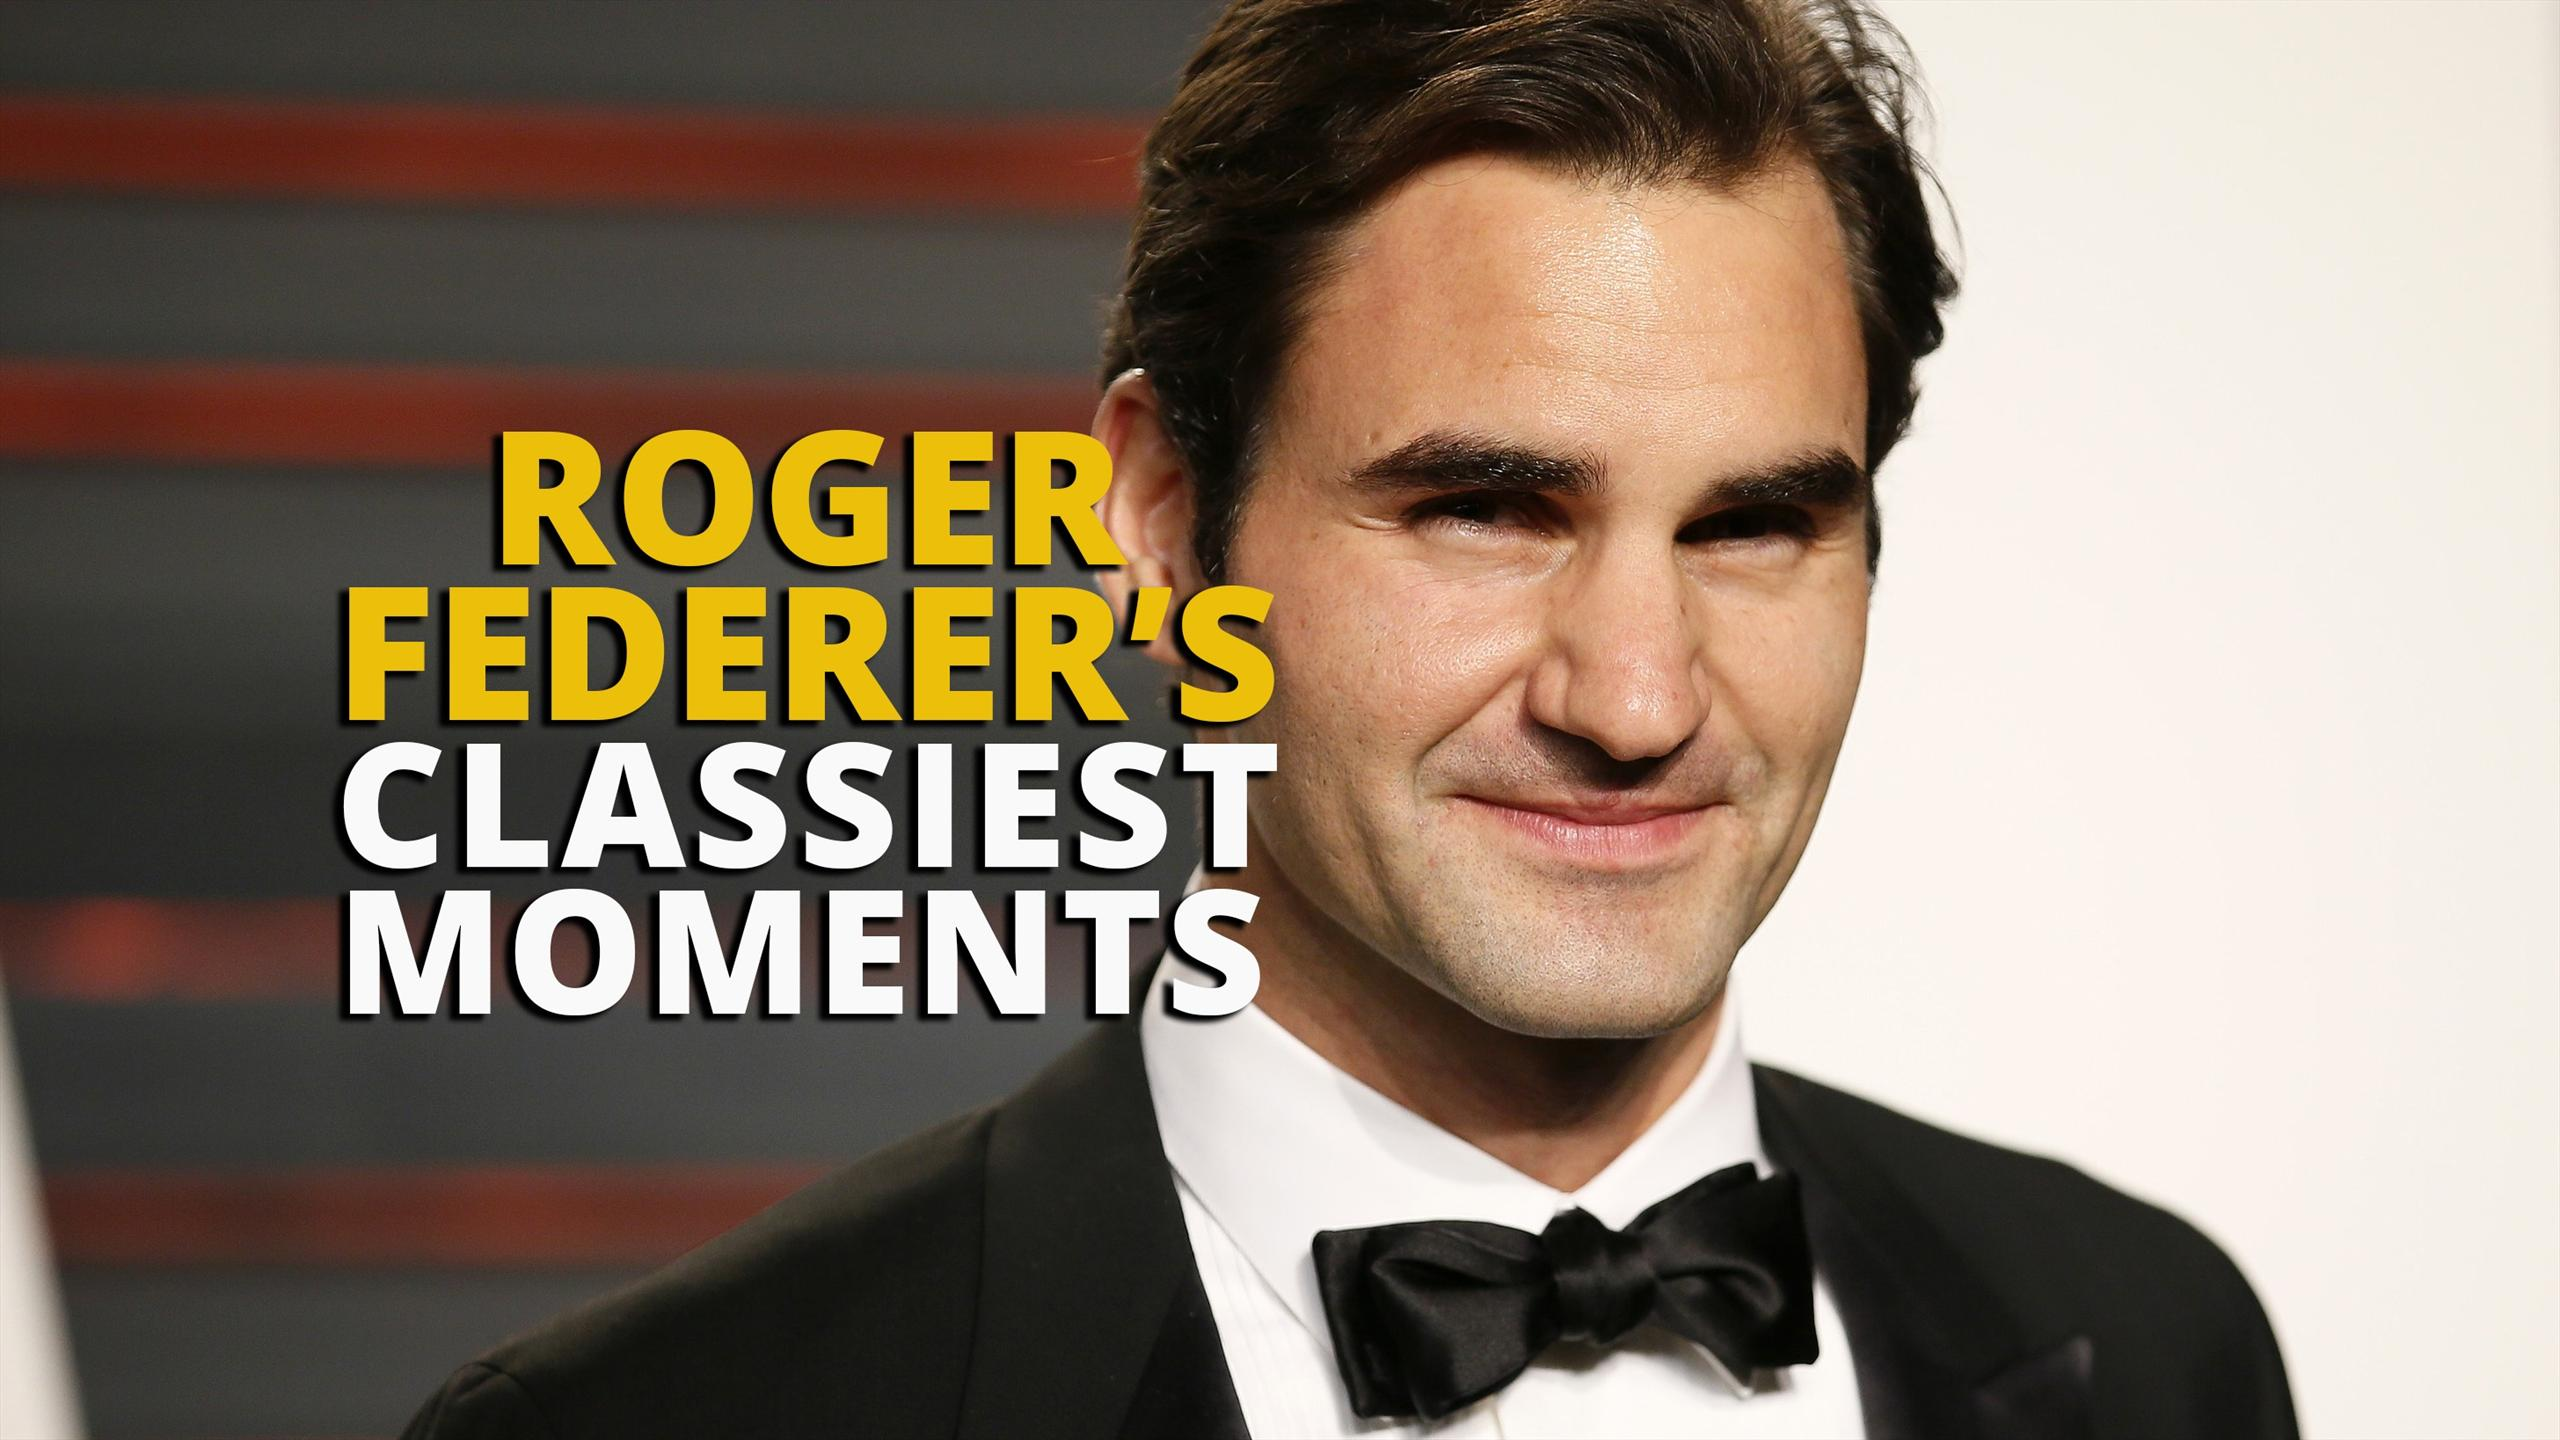 Roger Federer's classiest moments